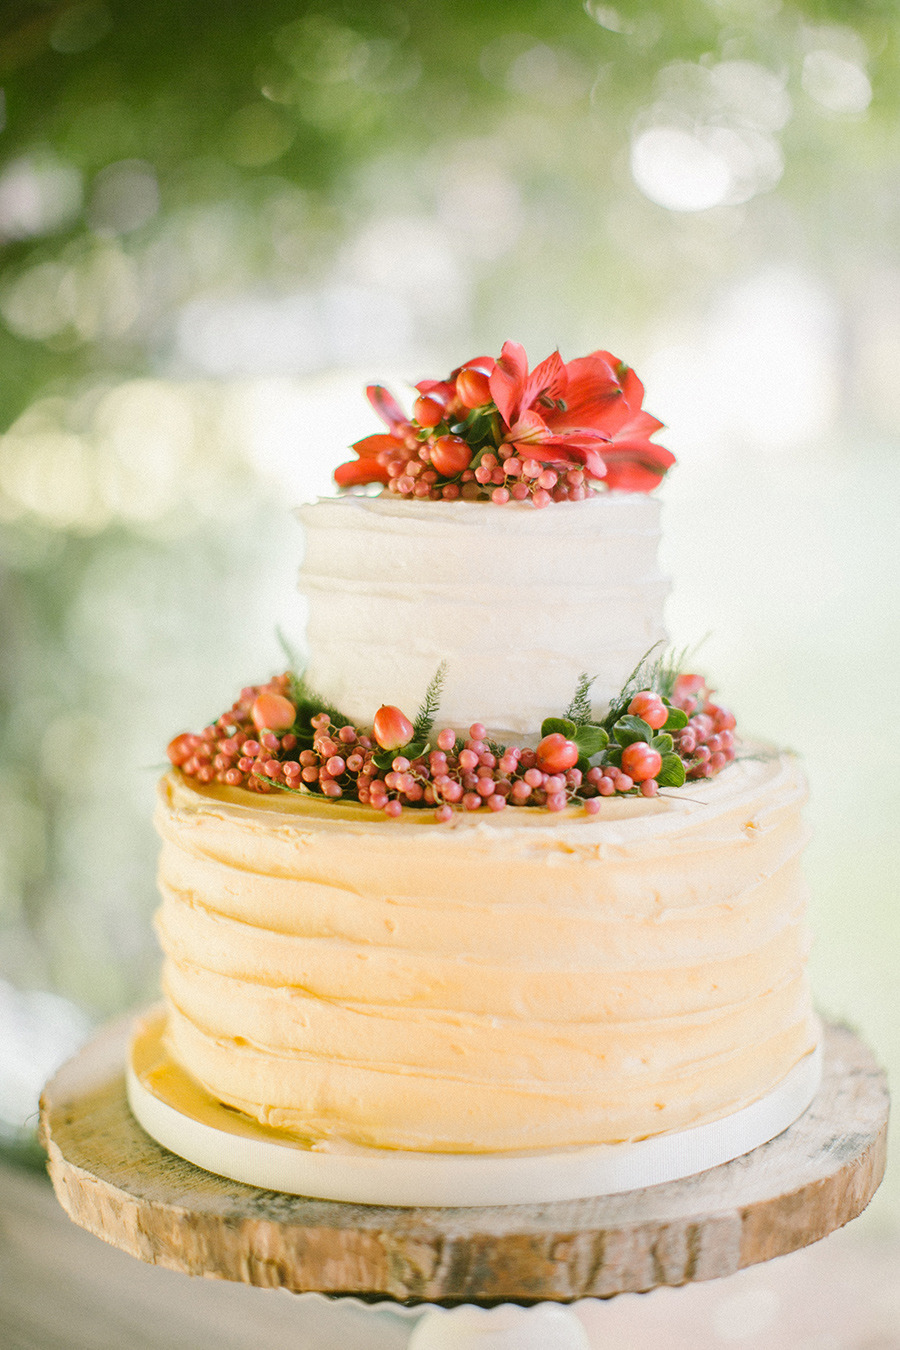 winter wedding cake - Boho Chic Wedding Inspiration Shoot from Anna Roussos Photography - annaroussos.com | Read more : https://www.fabmood.com/boho-chic-wedding-inspiration-shoot-anna-roussos-photography